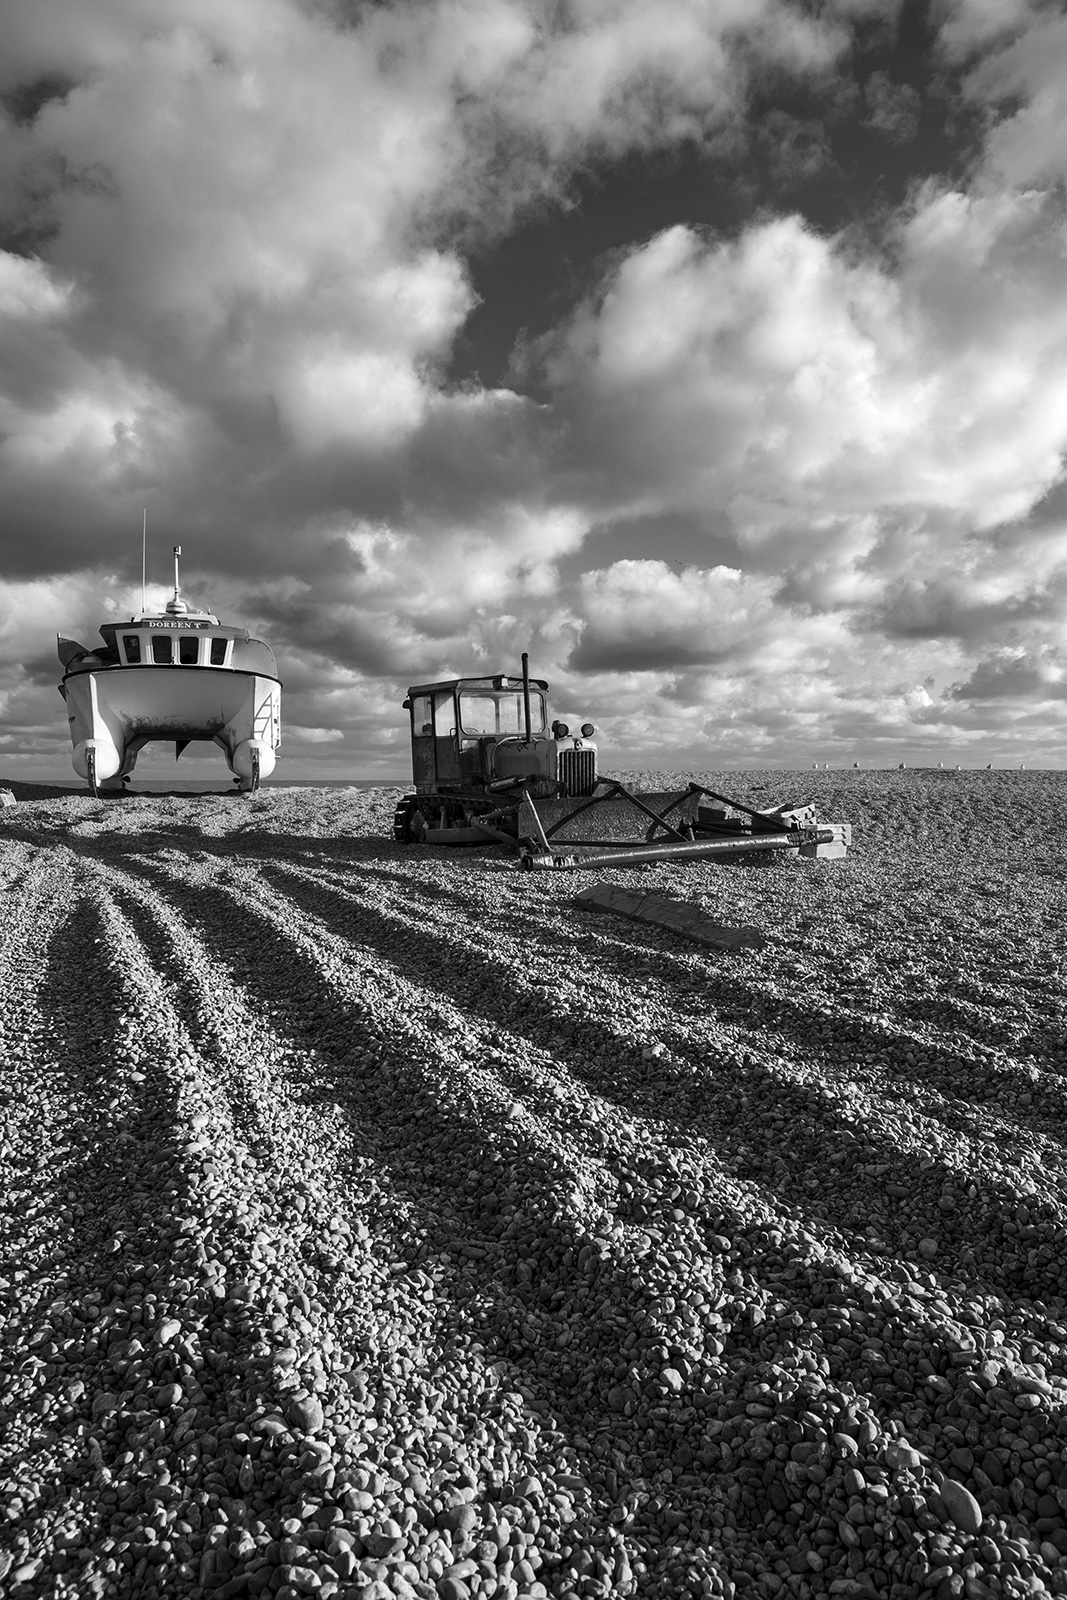 Fishing boat catamaran next to bulldozer on shingle beach with track marks and dramatic clouds in sky, Dungeness Kent UK, black and white monochrome landscape portrait © P. Maton 2018 eyeteeth.net